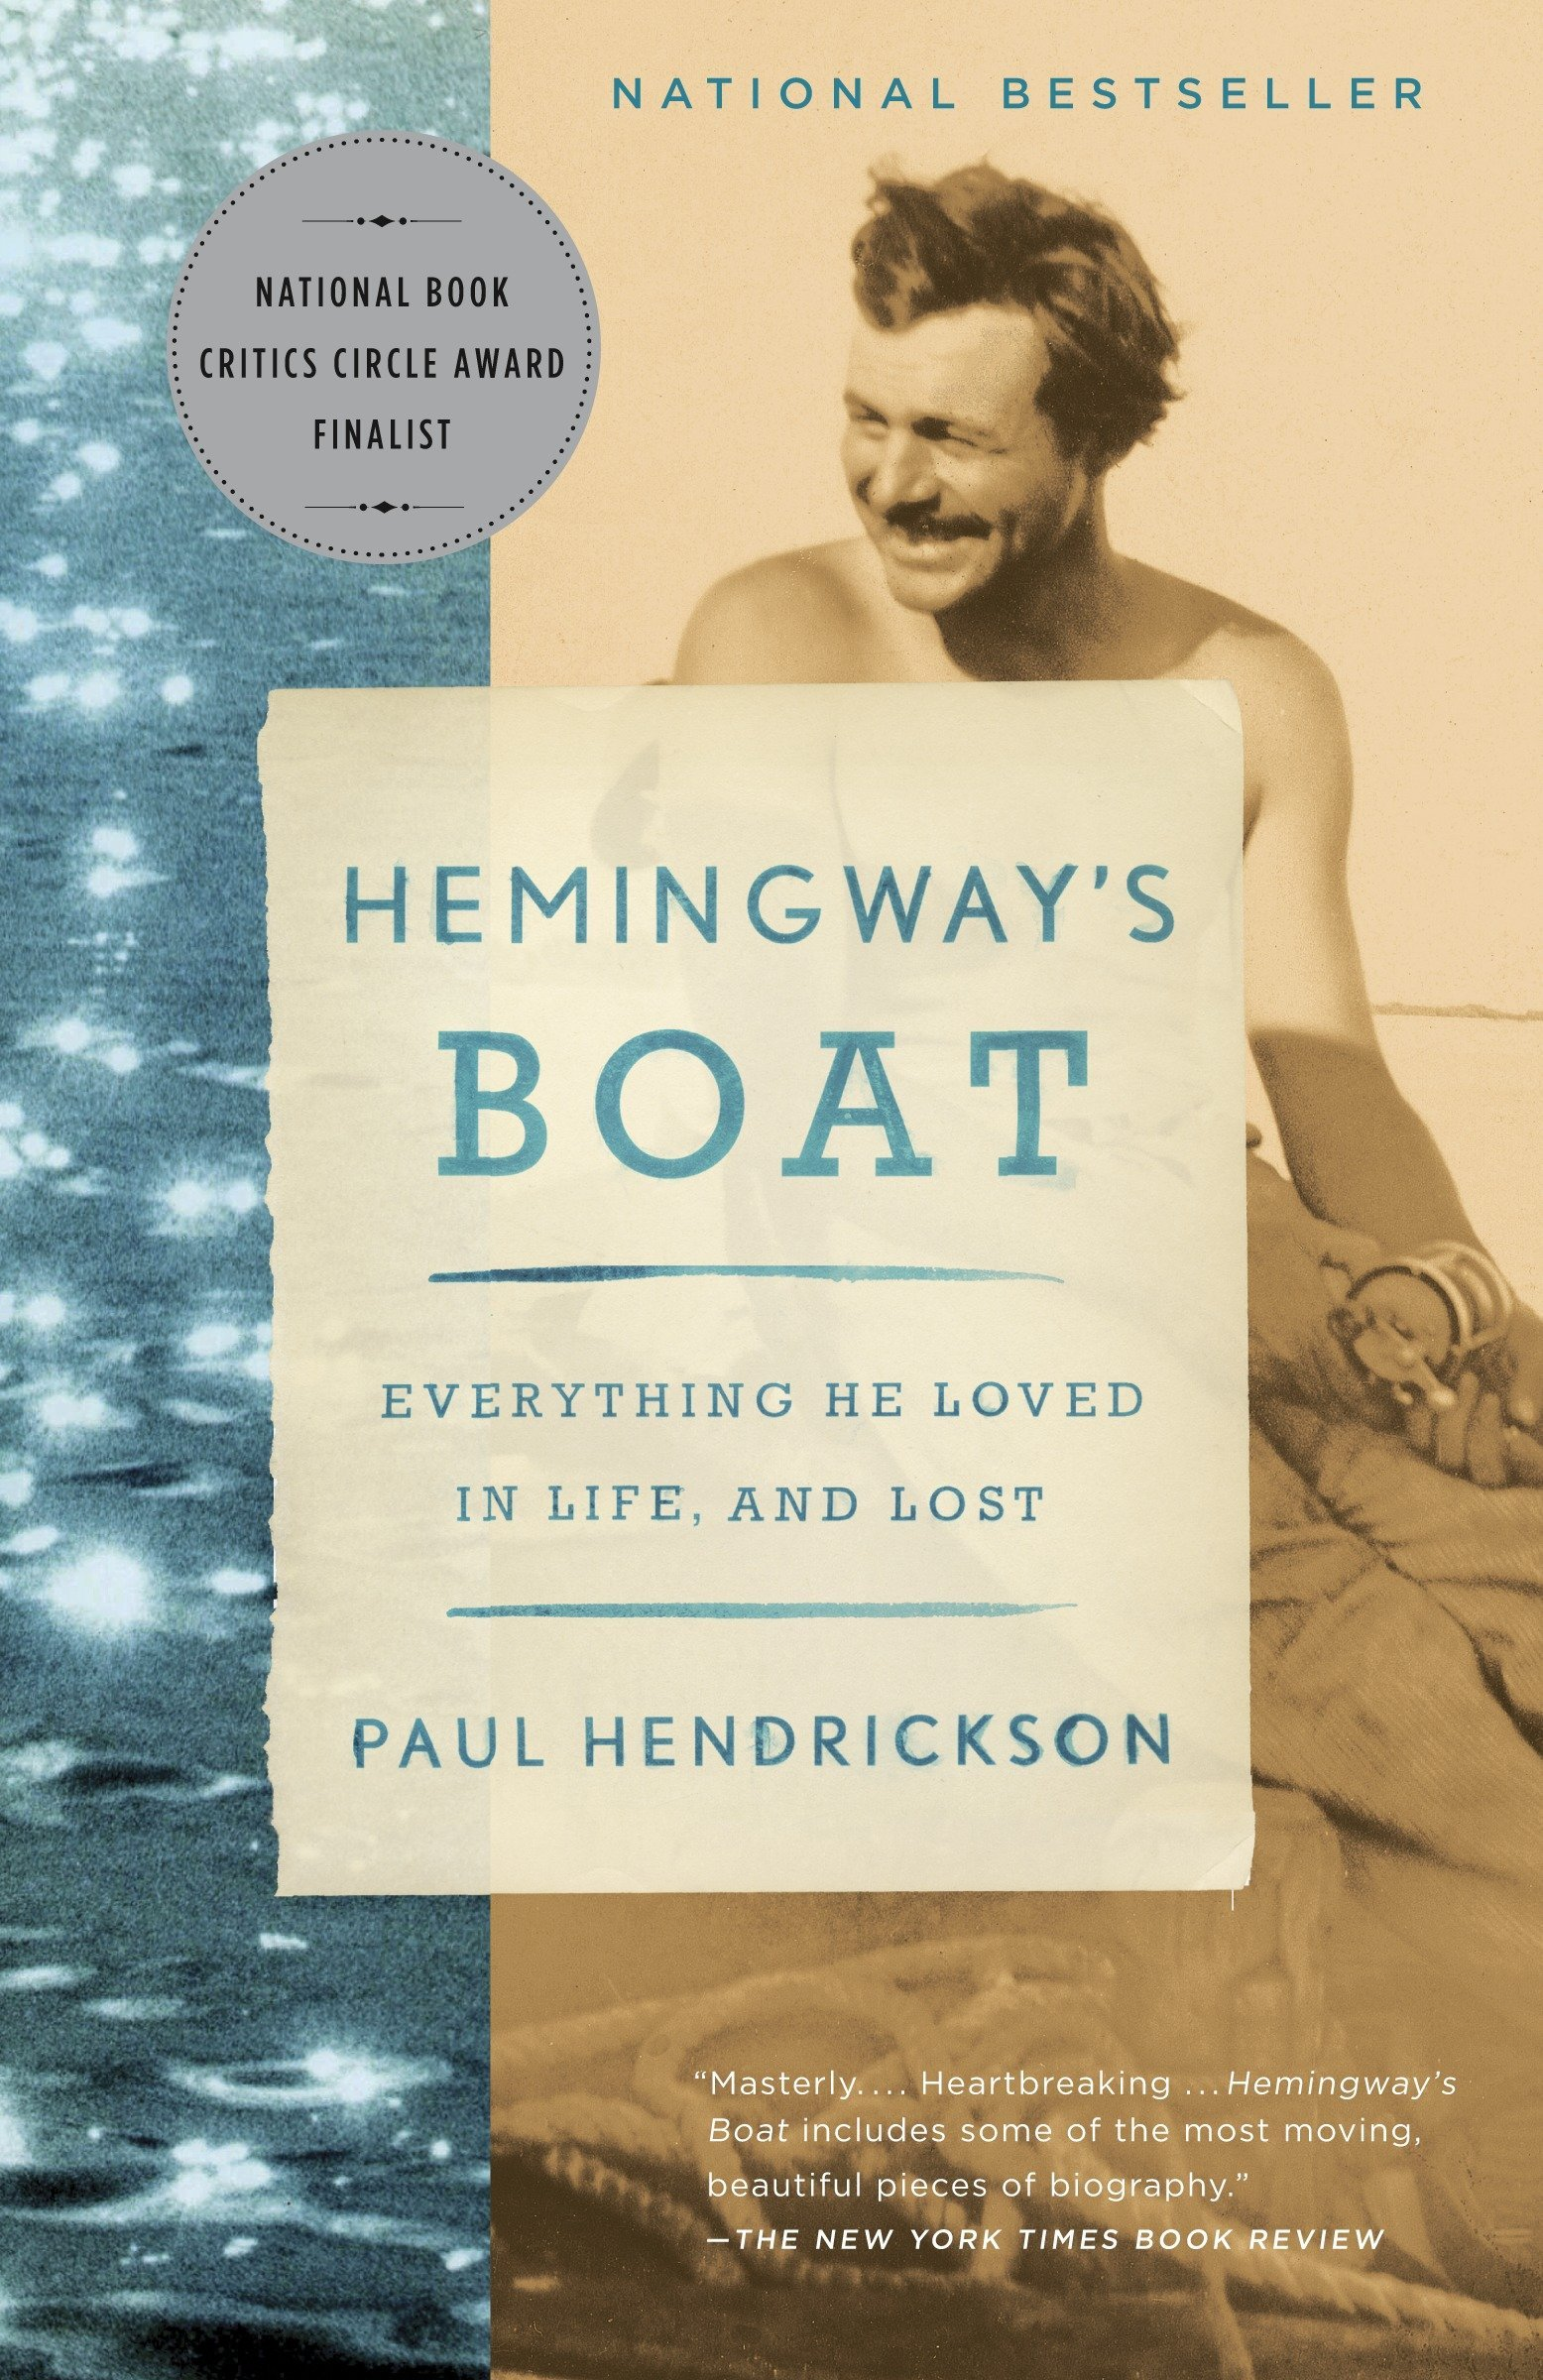 Hemingway's Boat: Everything He Loved in Life, and Lost: Paul Hendrickson:  9781400075355: Books - Amazon.ca